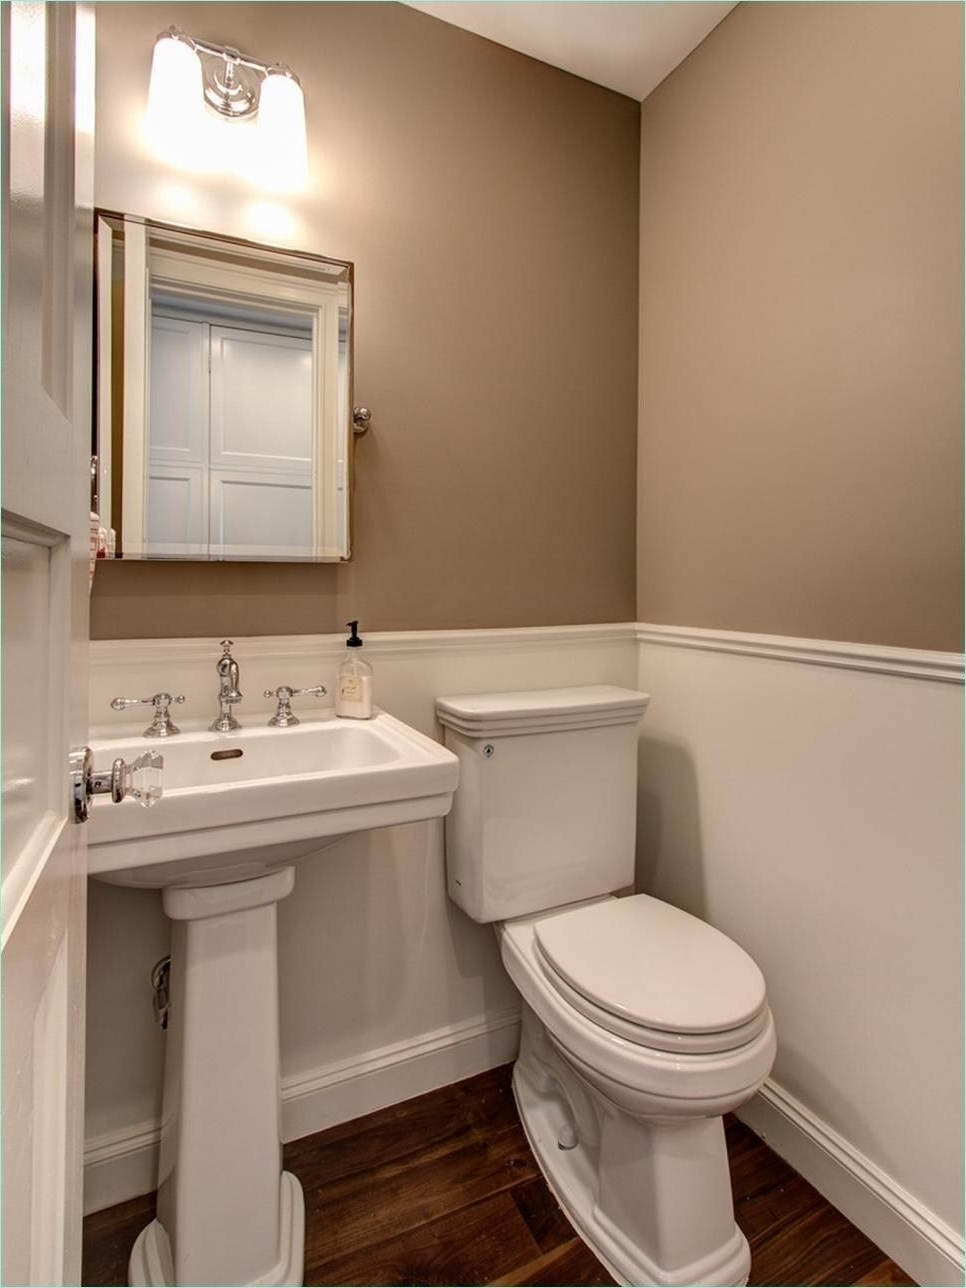 Coolest Small Bathrooms With Wainscoting Decorecord 10+ Small Bathroom Designs With Wainscoting Ideas